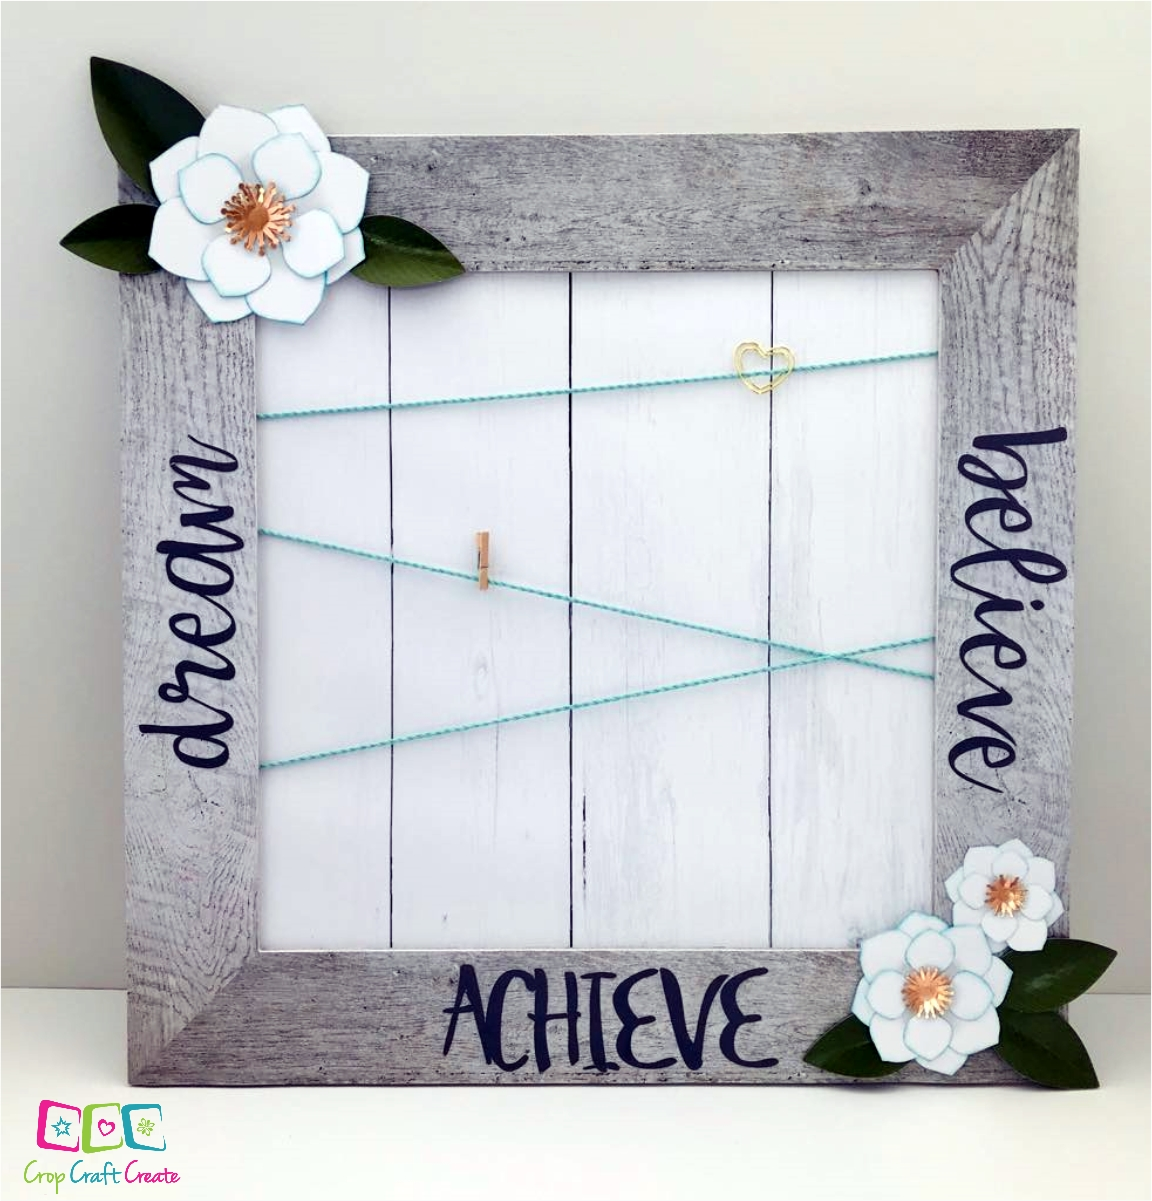 Vision Board created using CTMH's Magnolia Frame Kit